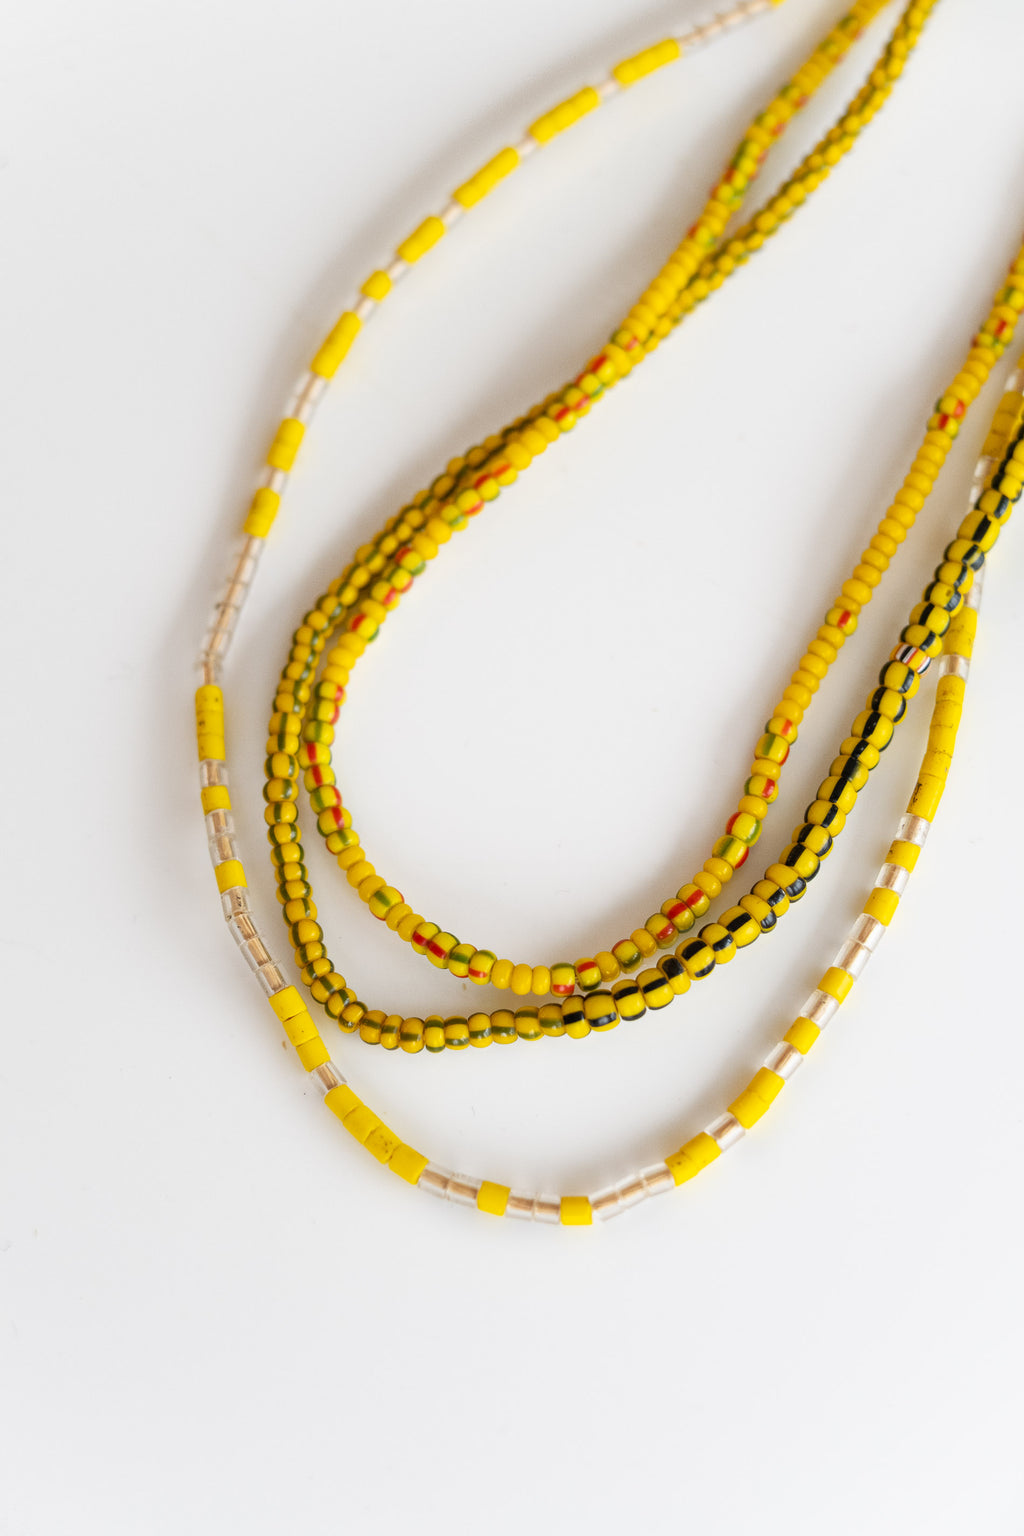 3-STRAND AFRICAN BEADS NO. 8